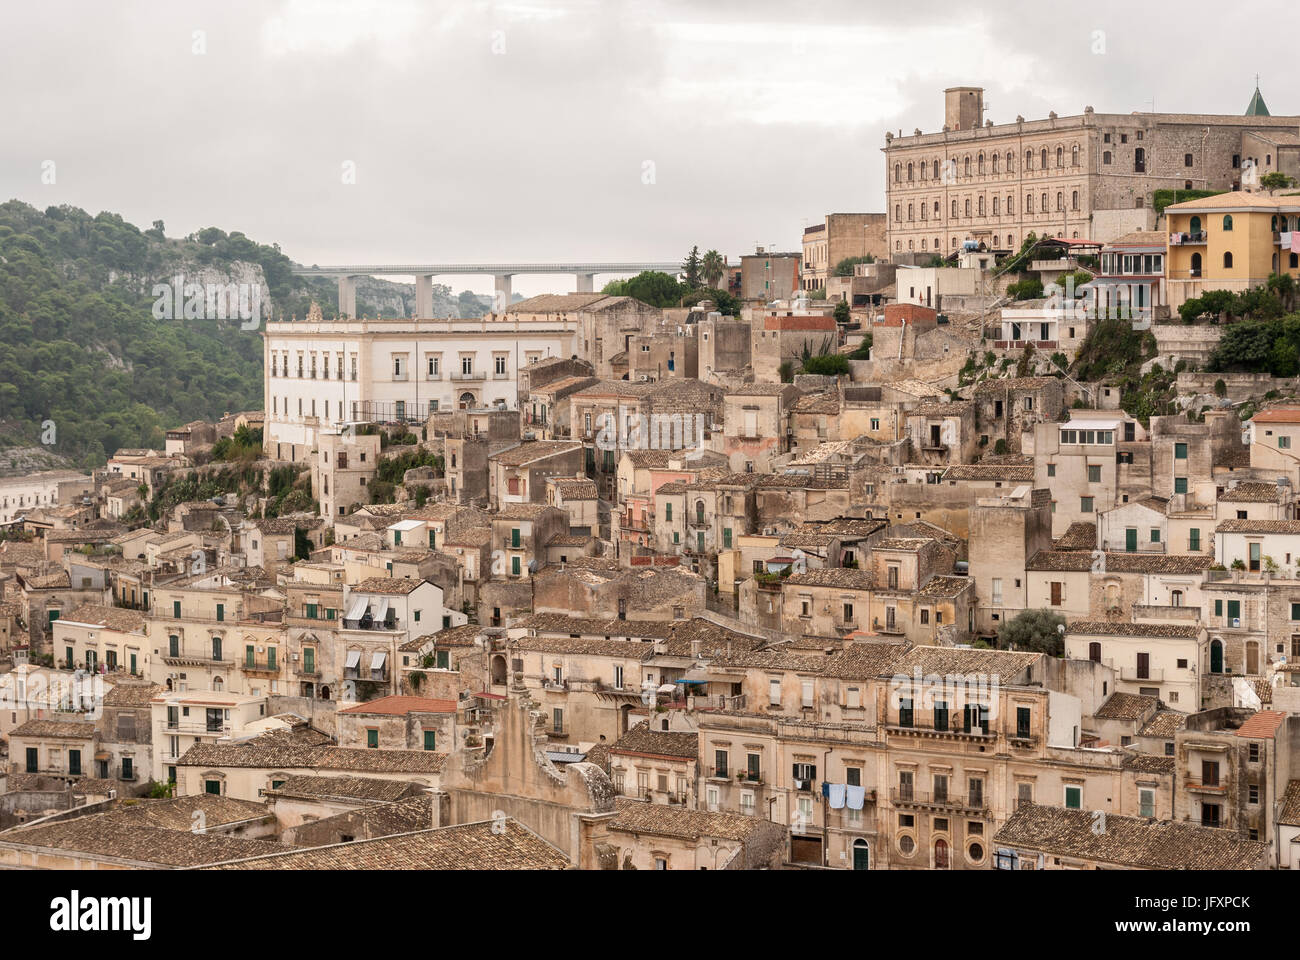 View of Modica, small town in Sicily - Stock Image